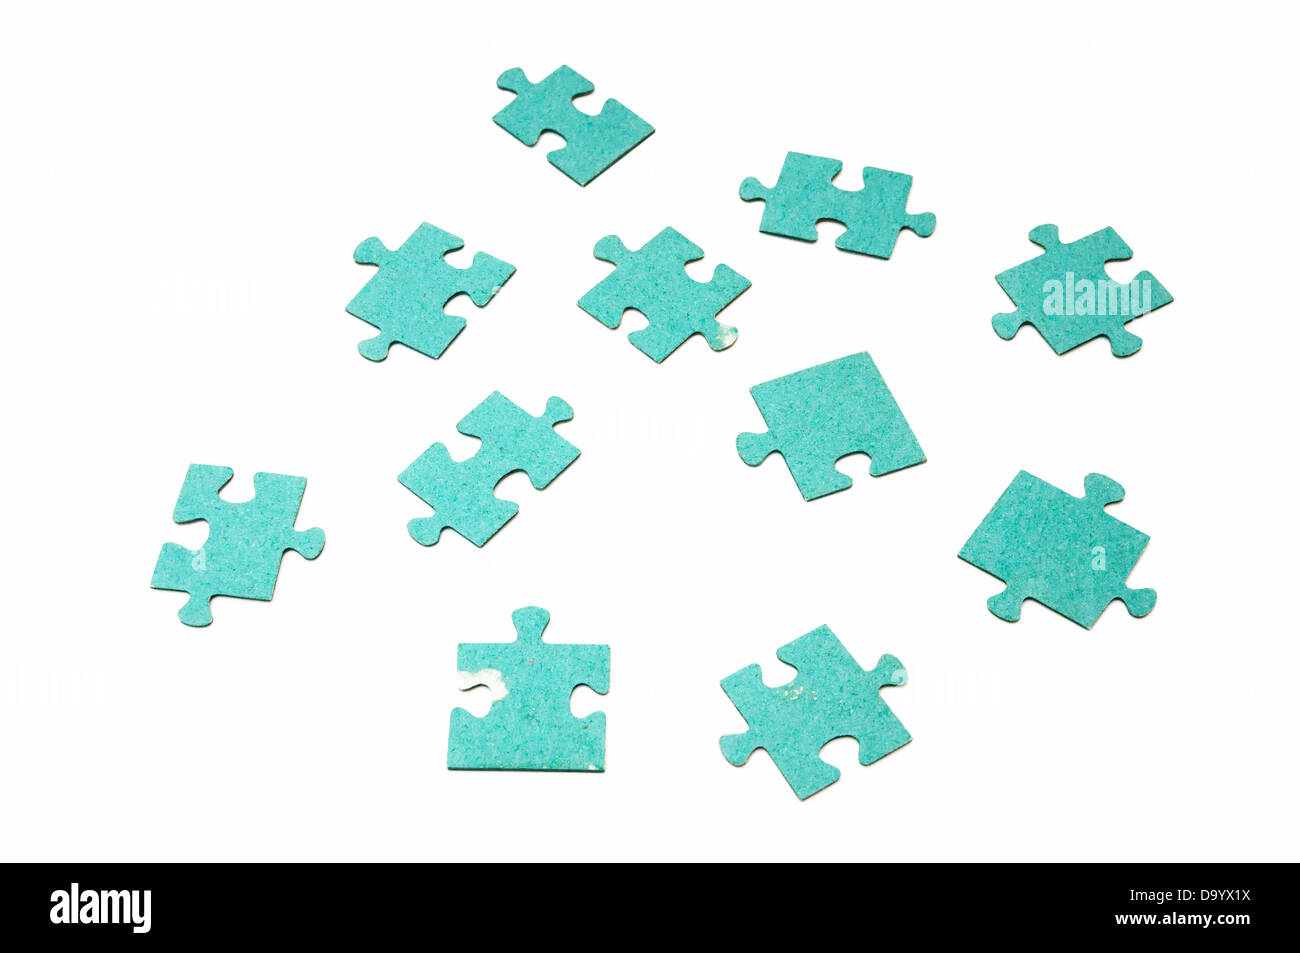 jigsaw pieces on a white background - Stock Image